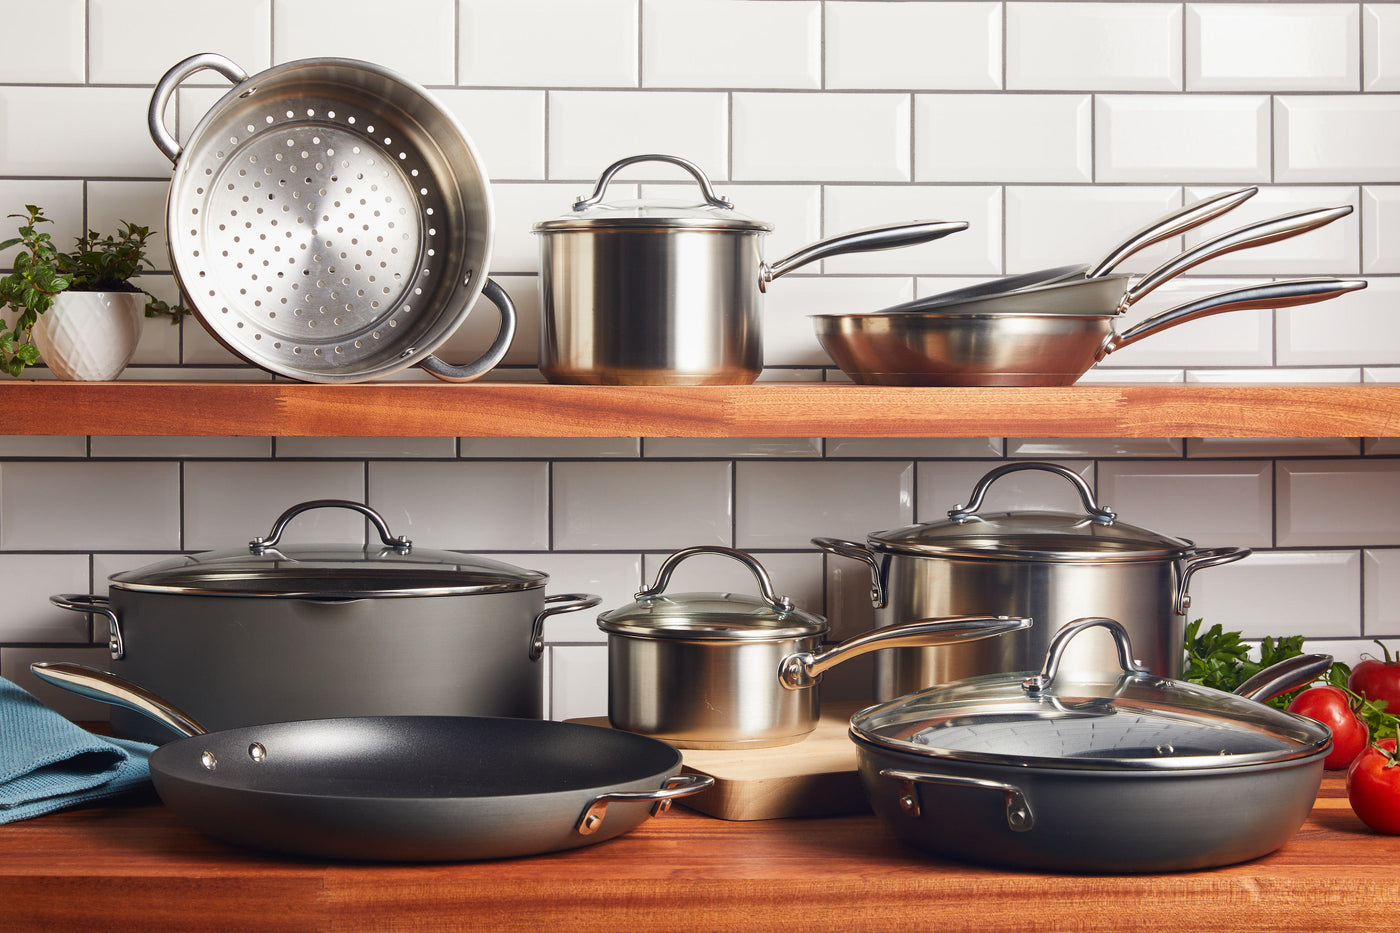 stainless-steel & hard-anodized nonstick